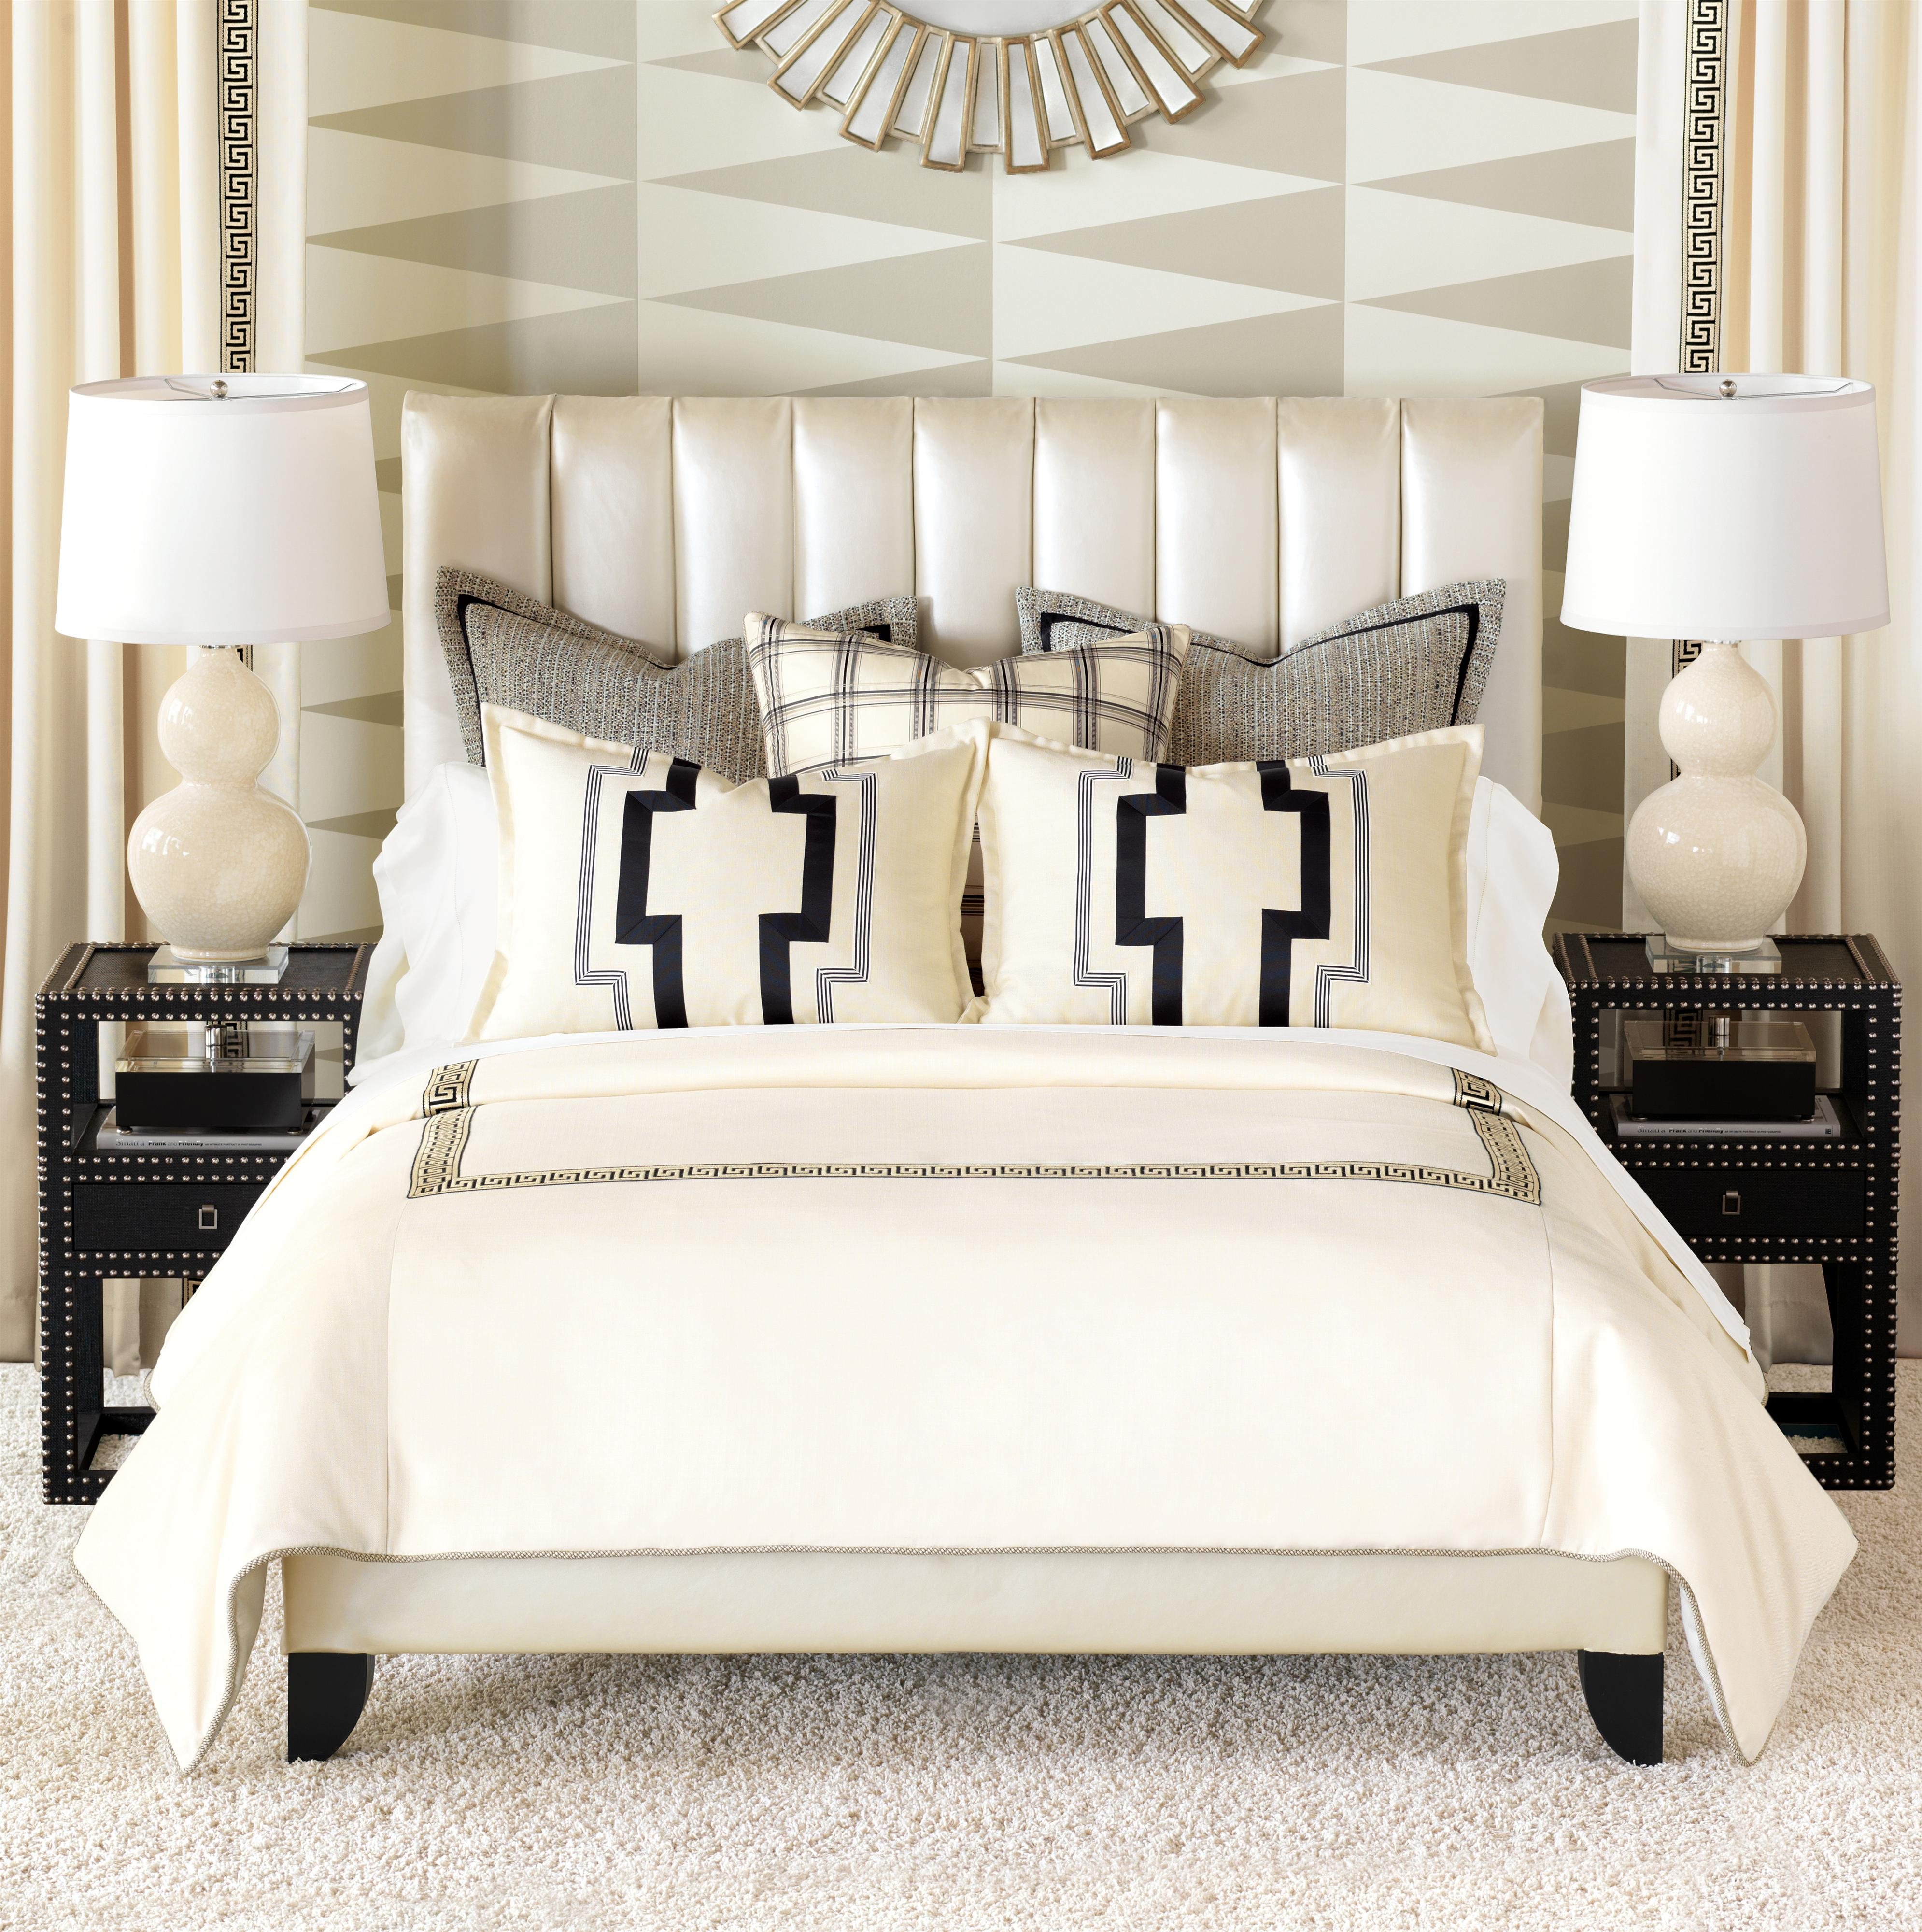 Abernathy King Button-Tufted Comforter by Eastern Accents at Alison Craig Home Furnishings